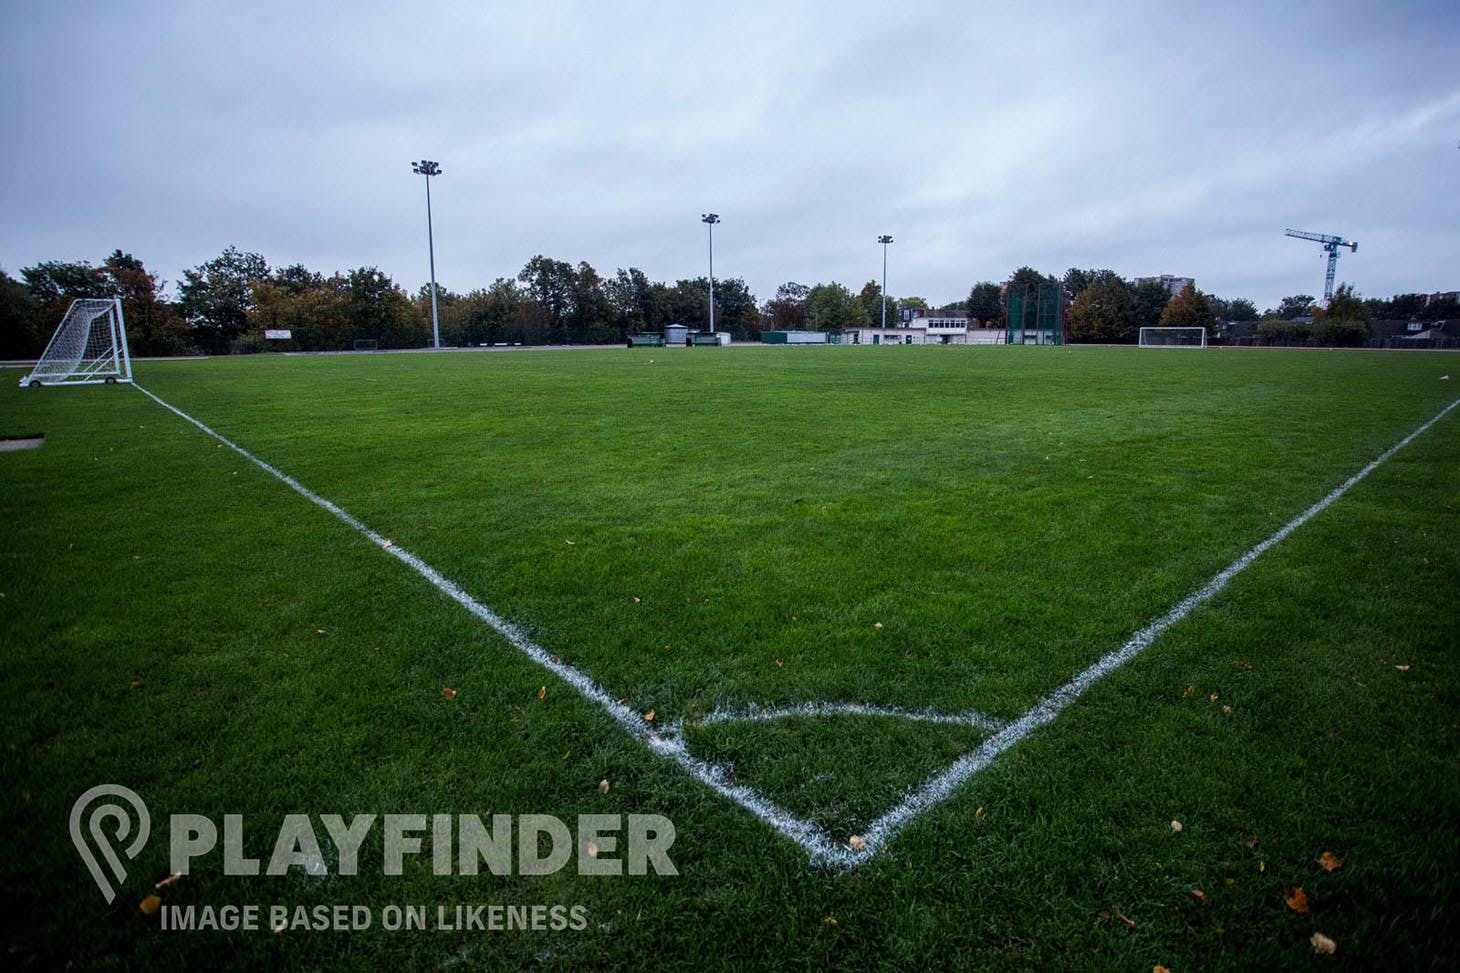 Leyton Sports Ground 11 a side | Grass football pitch